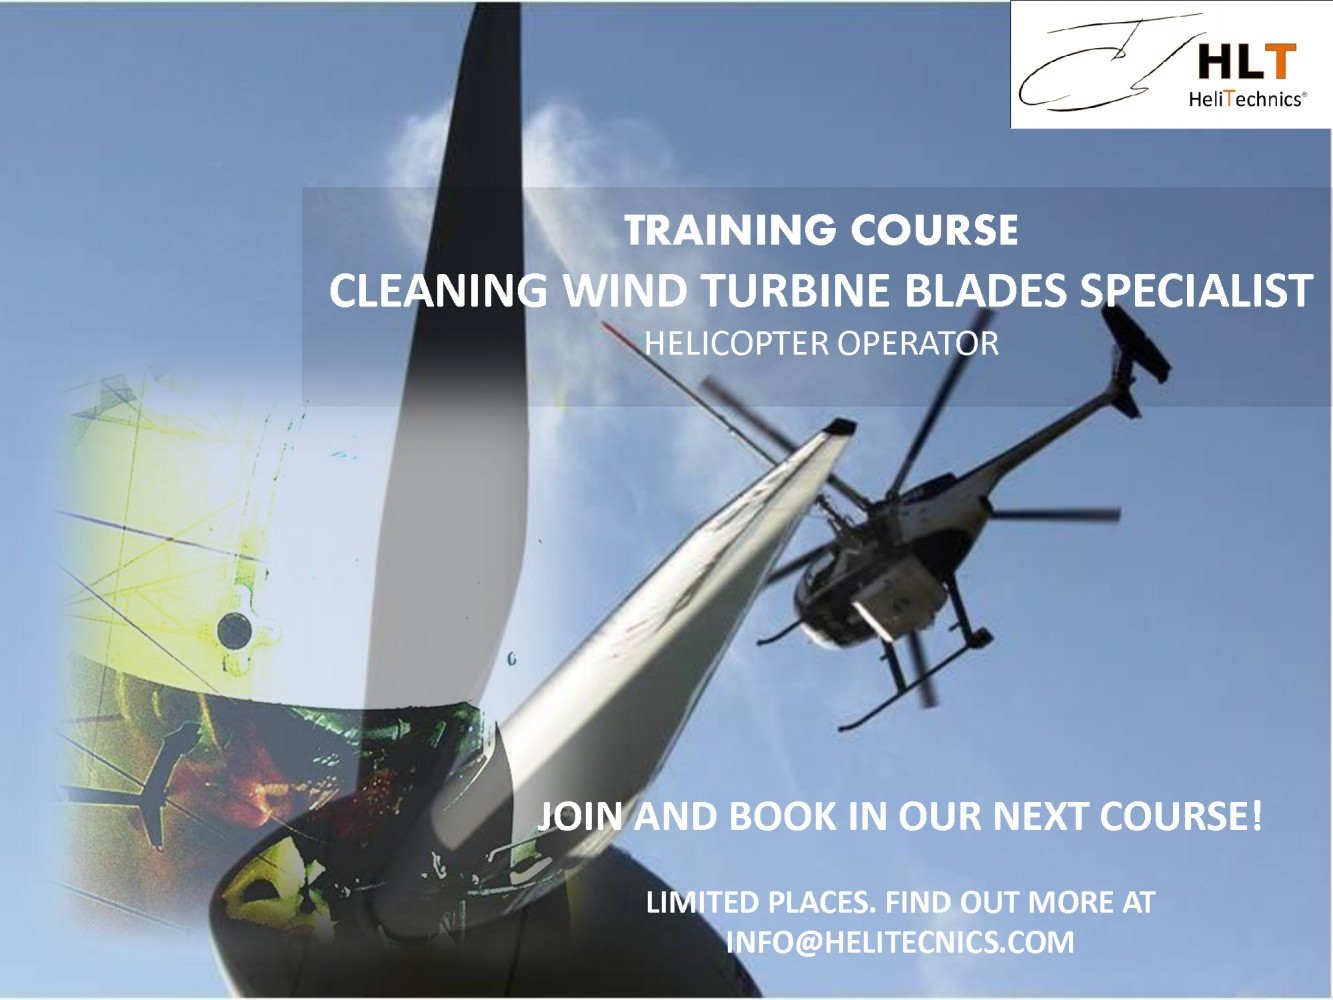 TRAINING COURSE Cleaning Wind Turbine Blades